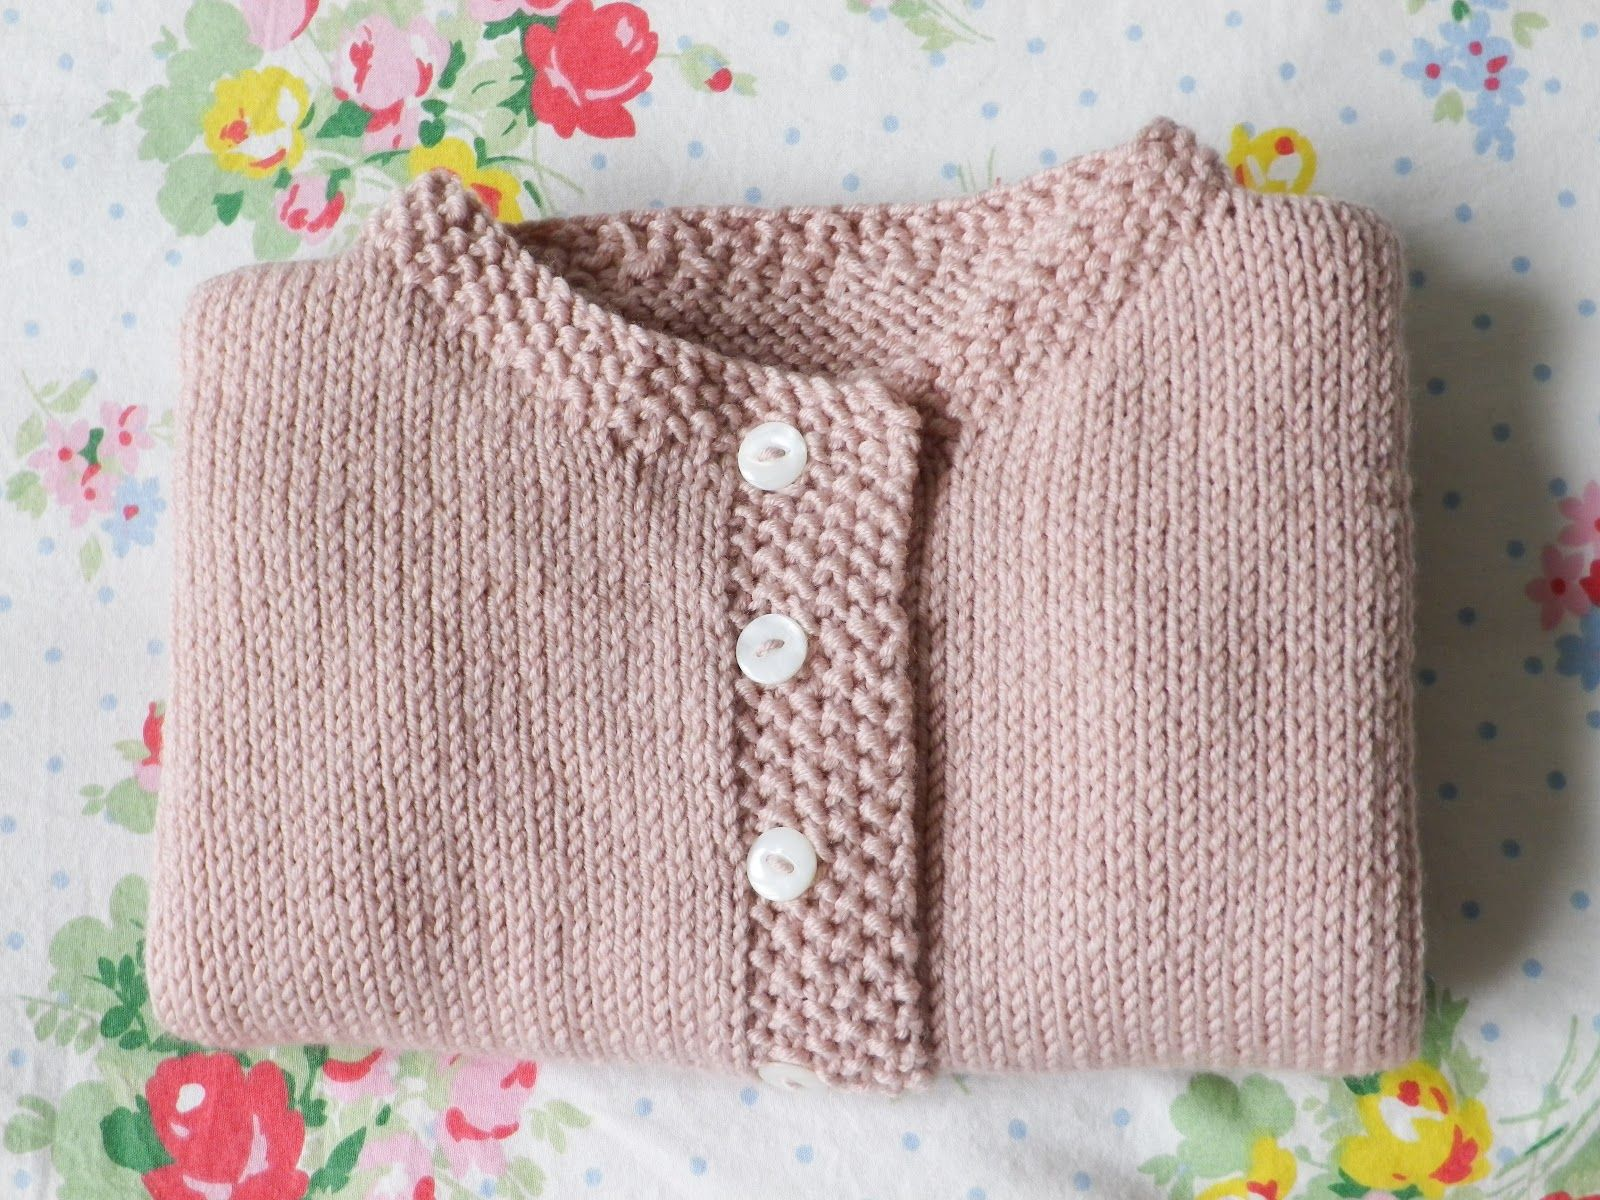 Pattern from Debbie Bliss' baby knits for beginners ...